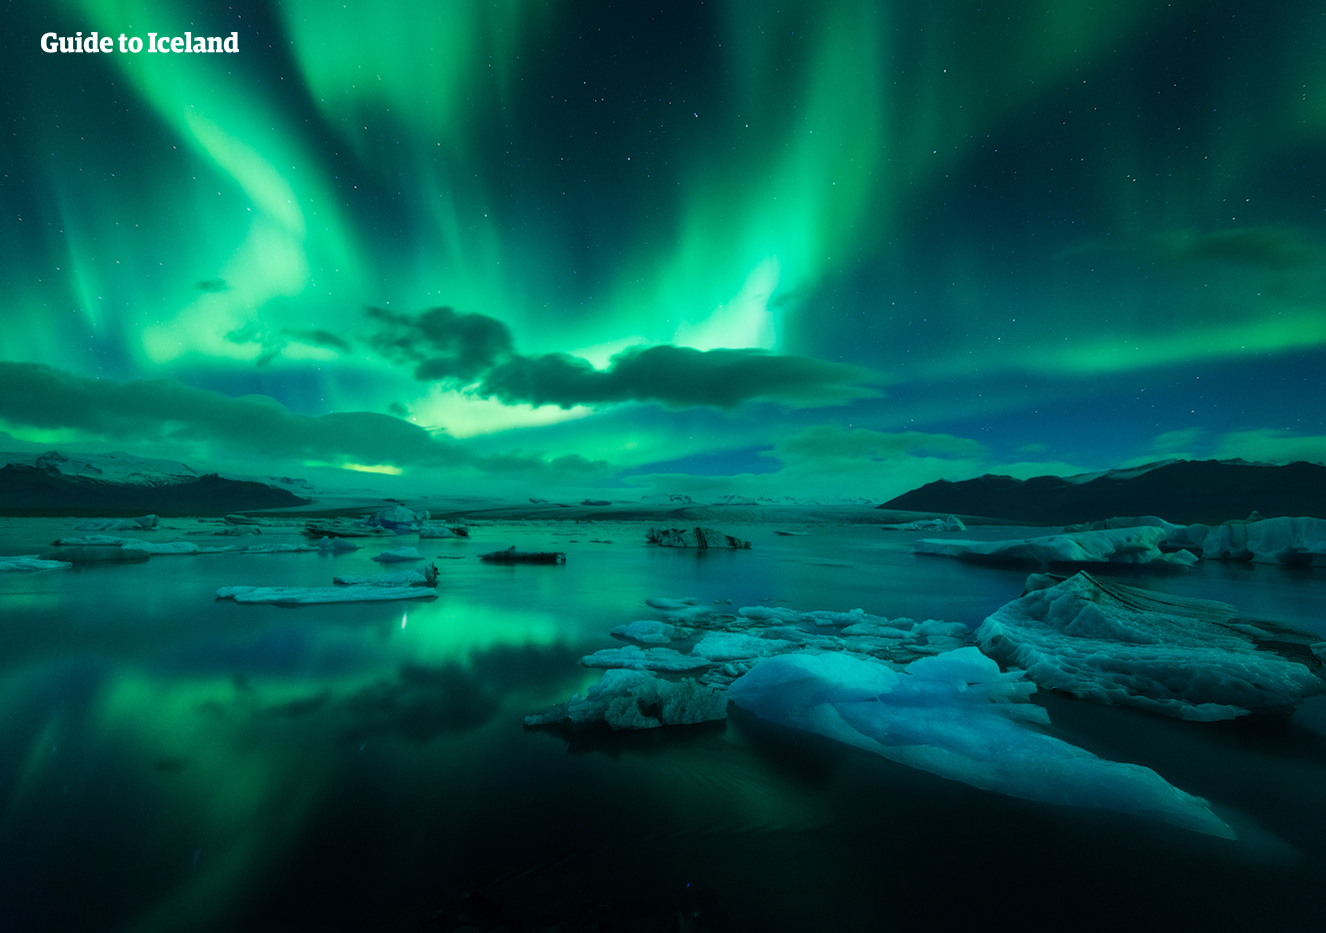 The Northern Lights dancing over the Jokulsarlon Glacier Lagoon in the South East of Iceland.